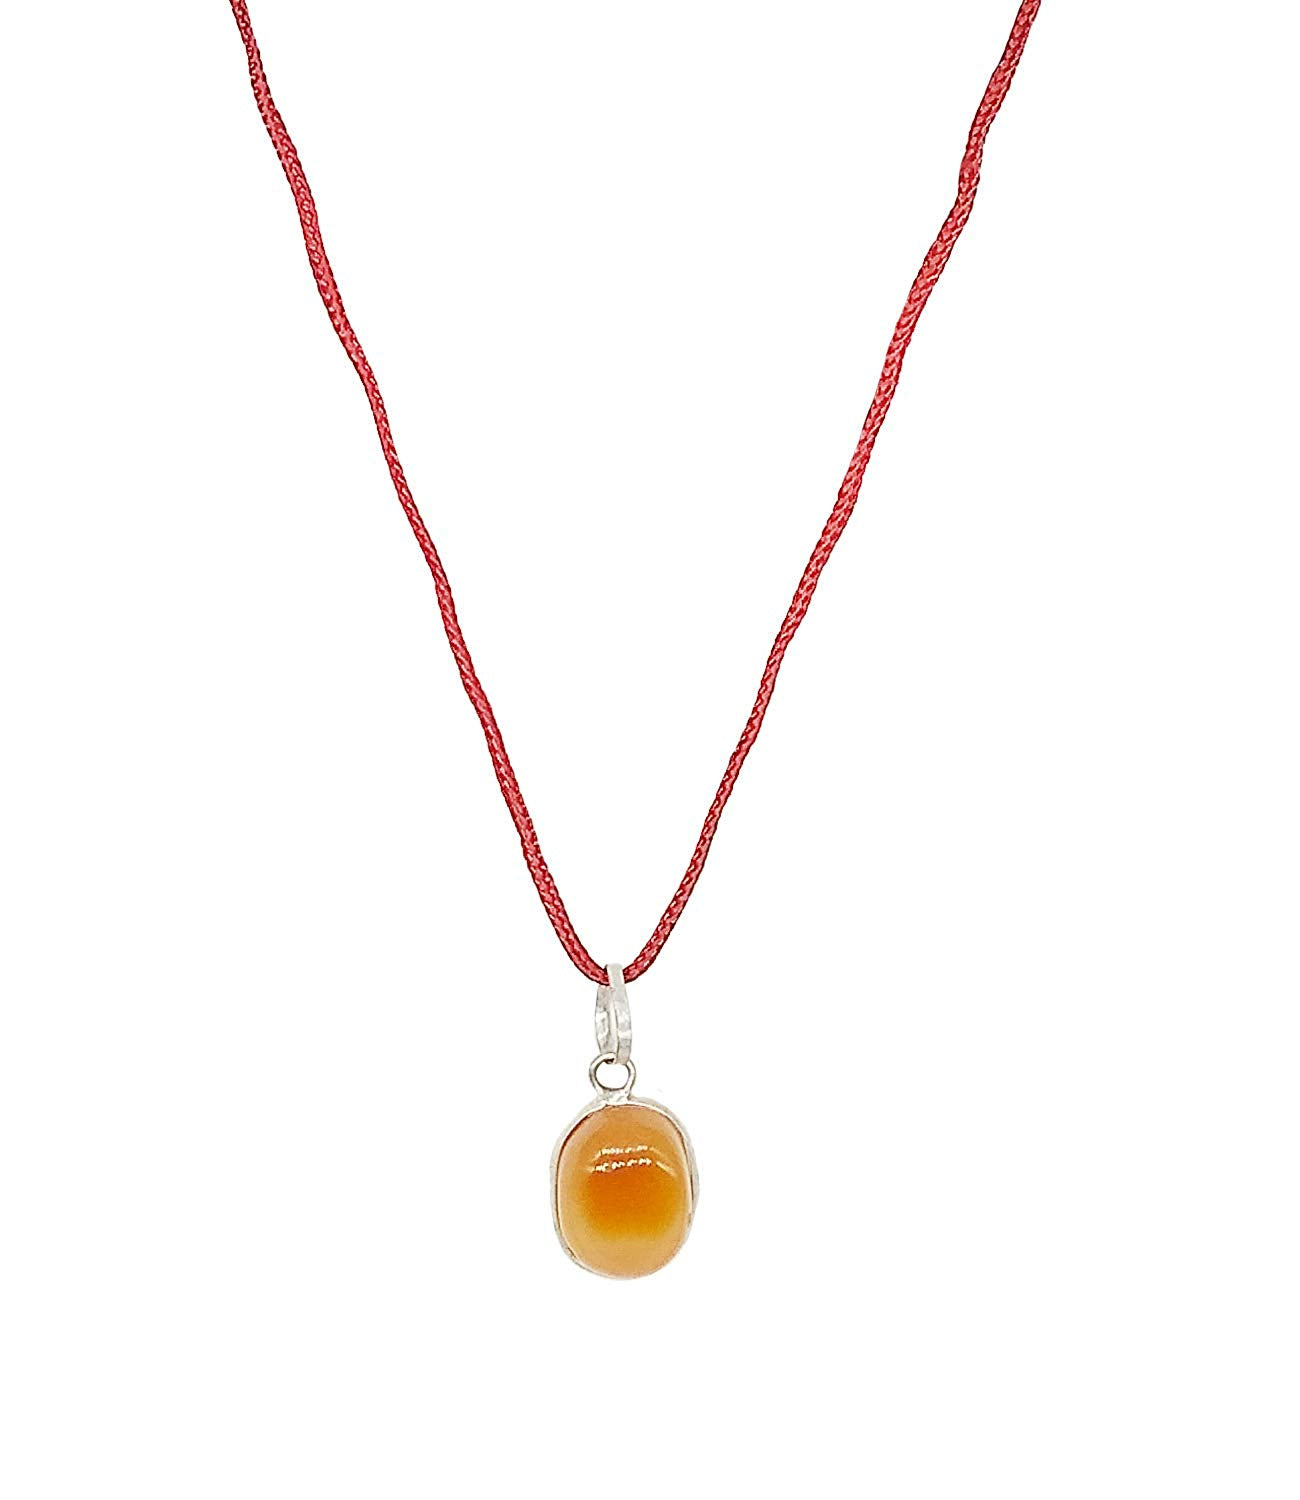 Orange Pendant/Locket Gemstone for Men and Women - Bagaholics Gift